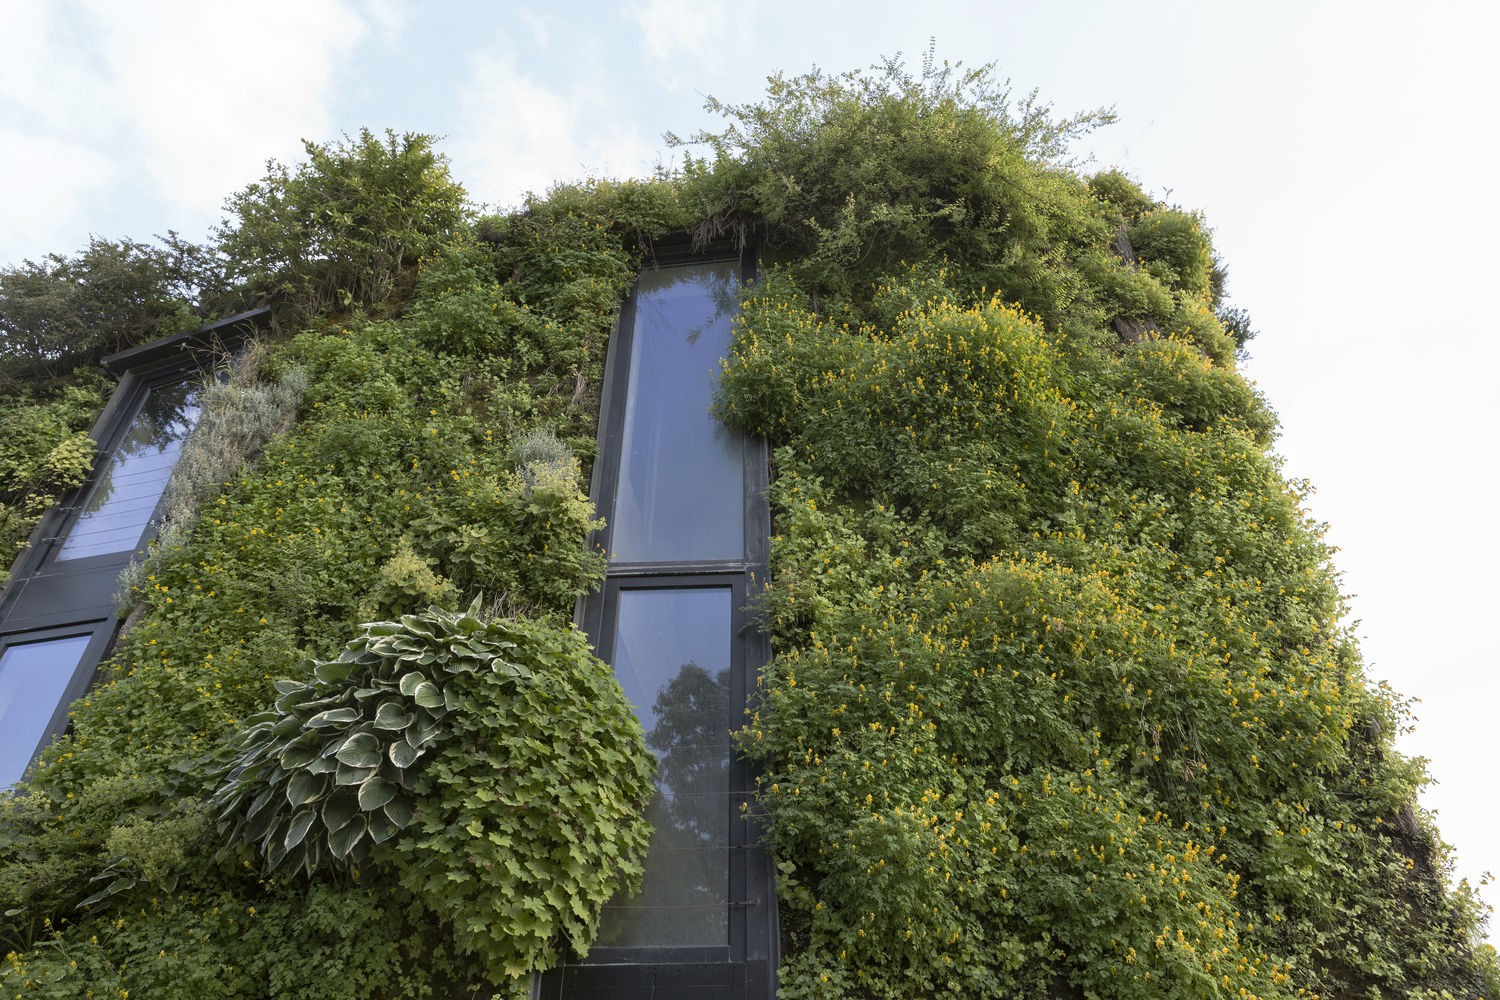 ARCH2O-House-in-the-Outskirts-of-Brussels-SAMYN-and-PARTNERS-23.jpg